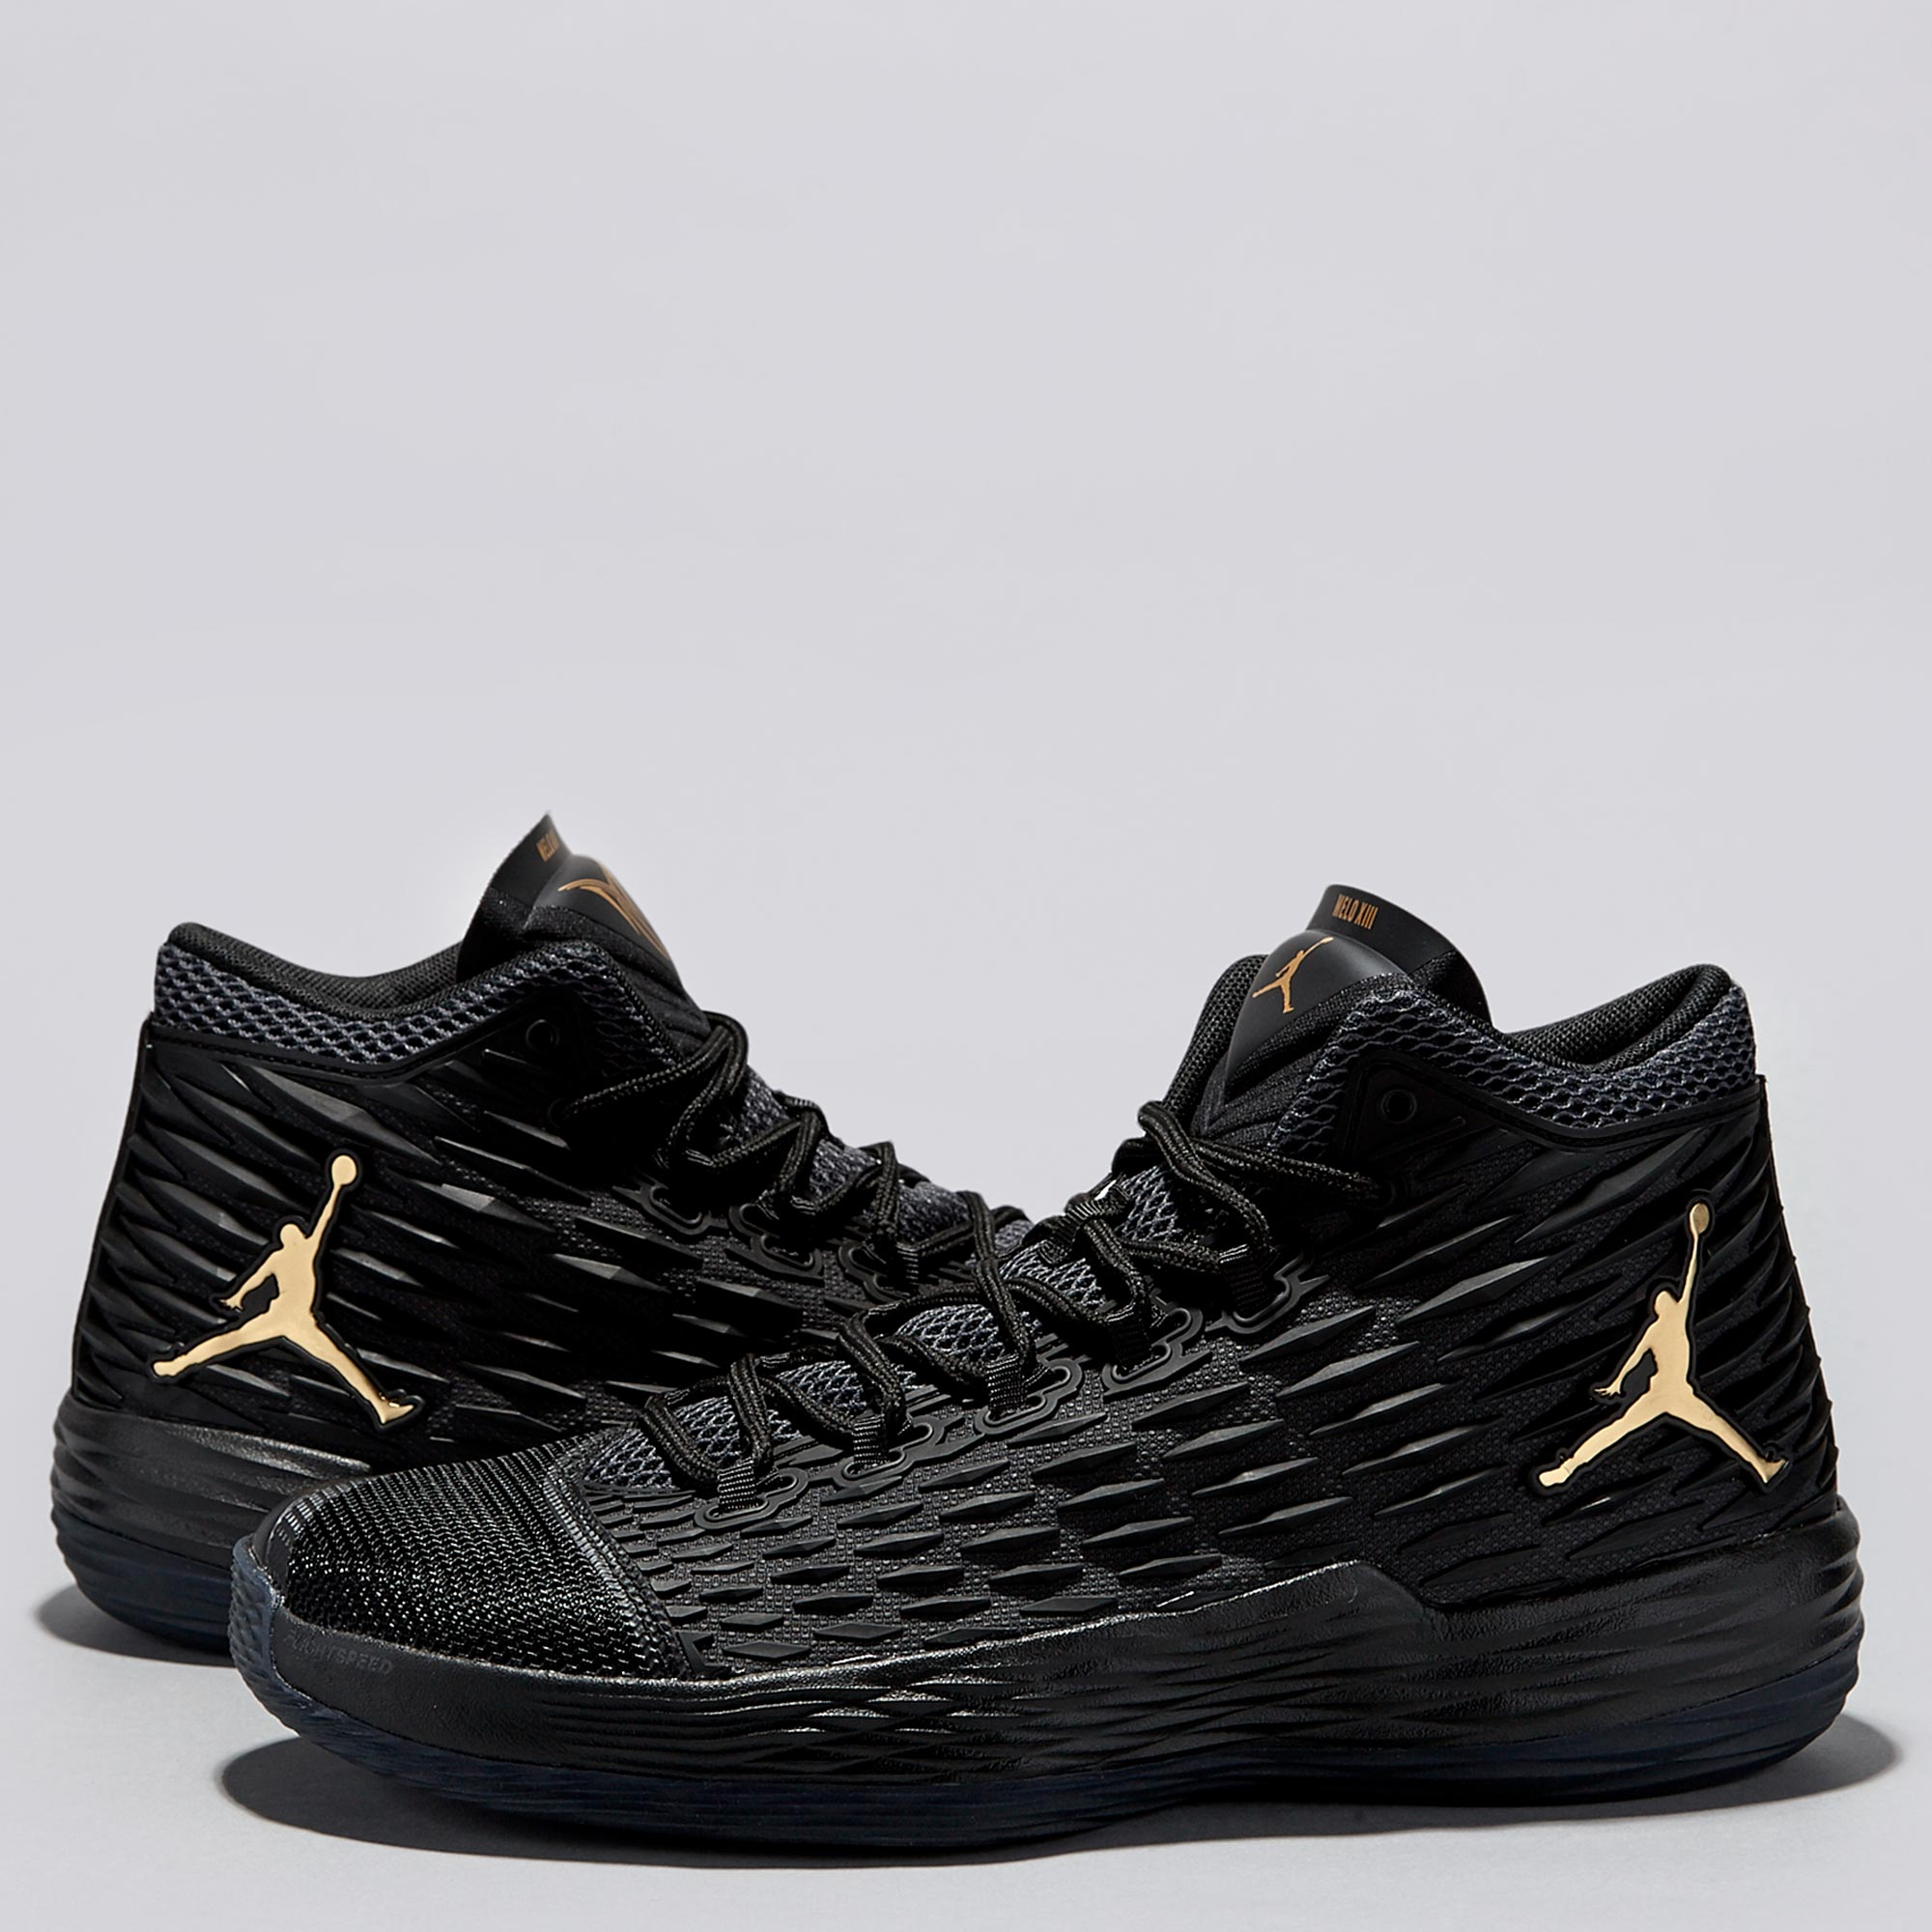 Jordan Melo M13 Basketball Shoe - Black/Metallic Gold - Mens